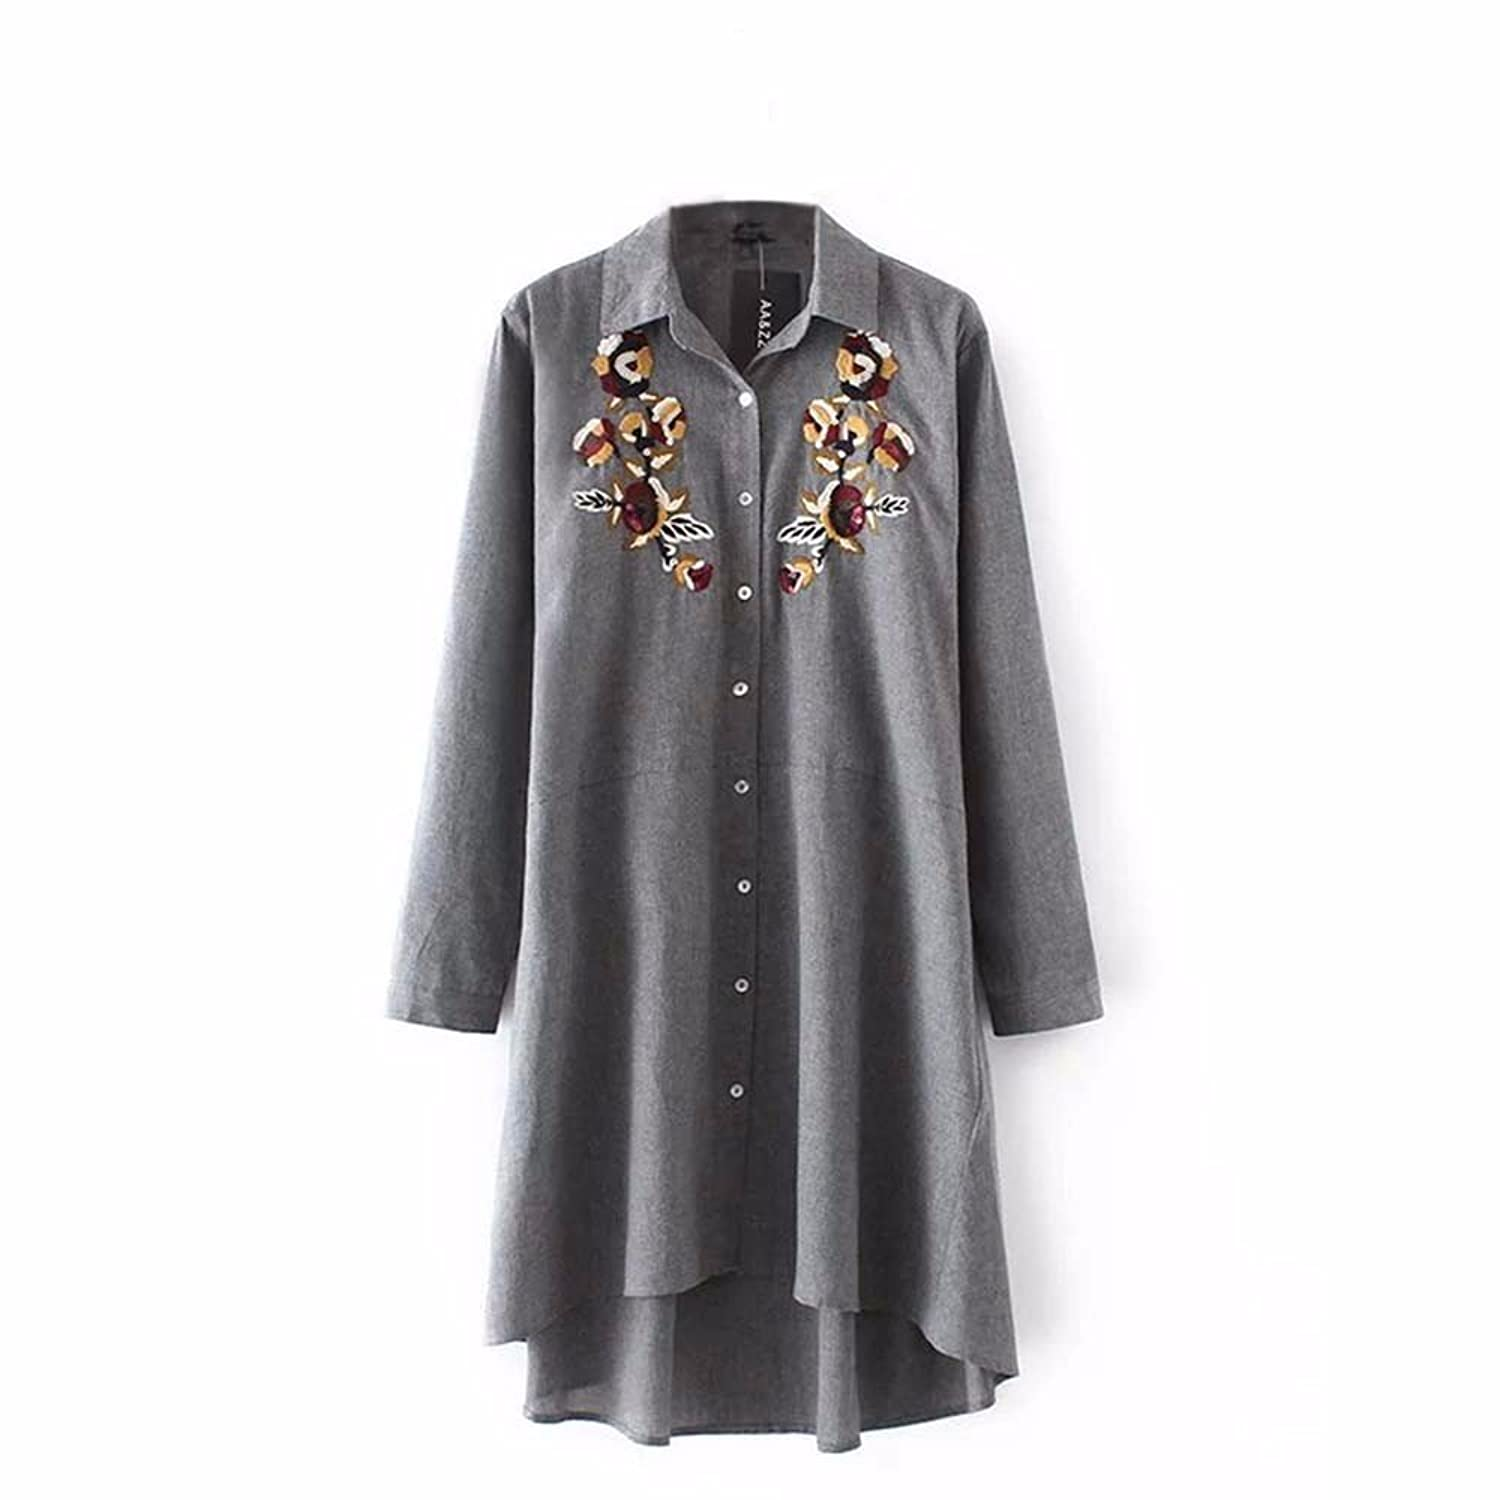 AOHANG Casual Floral Embroidery Blouse Women Button Down Shirts Dress